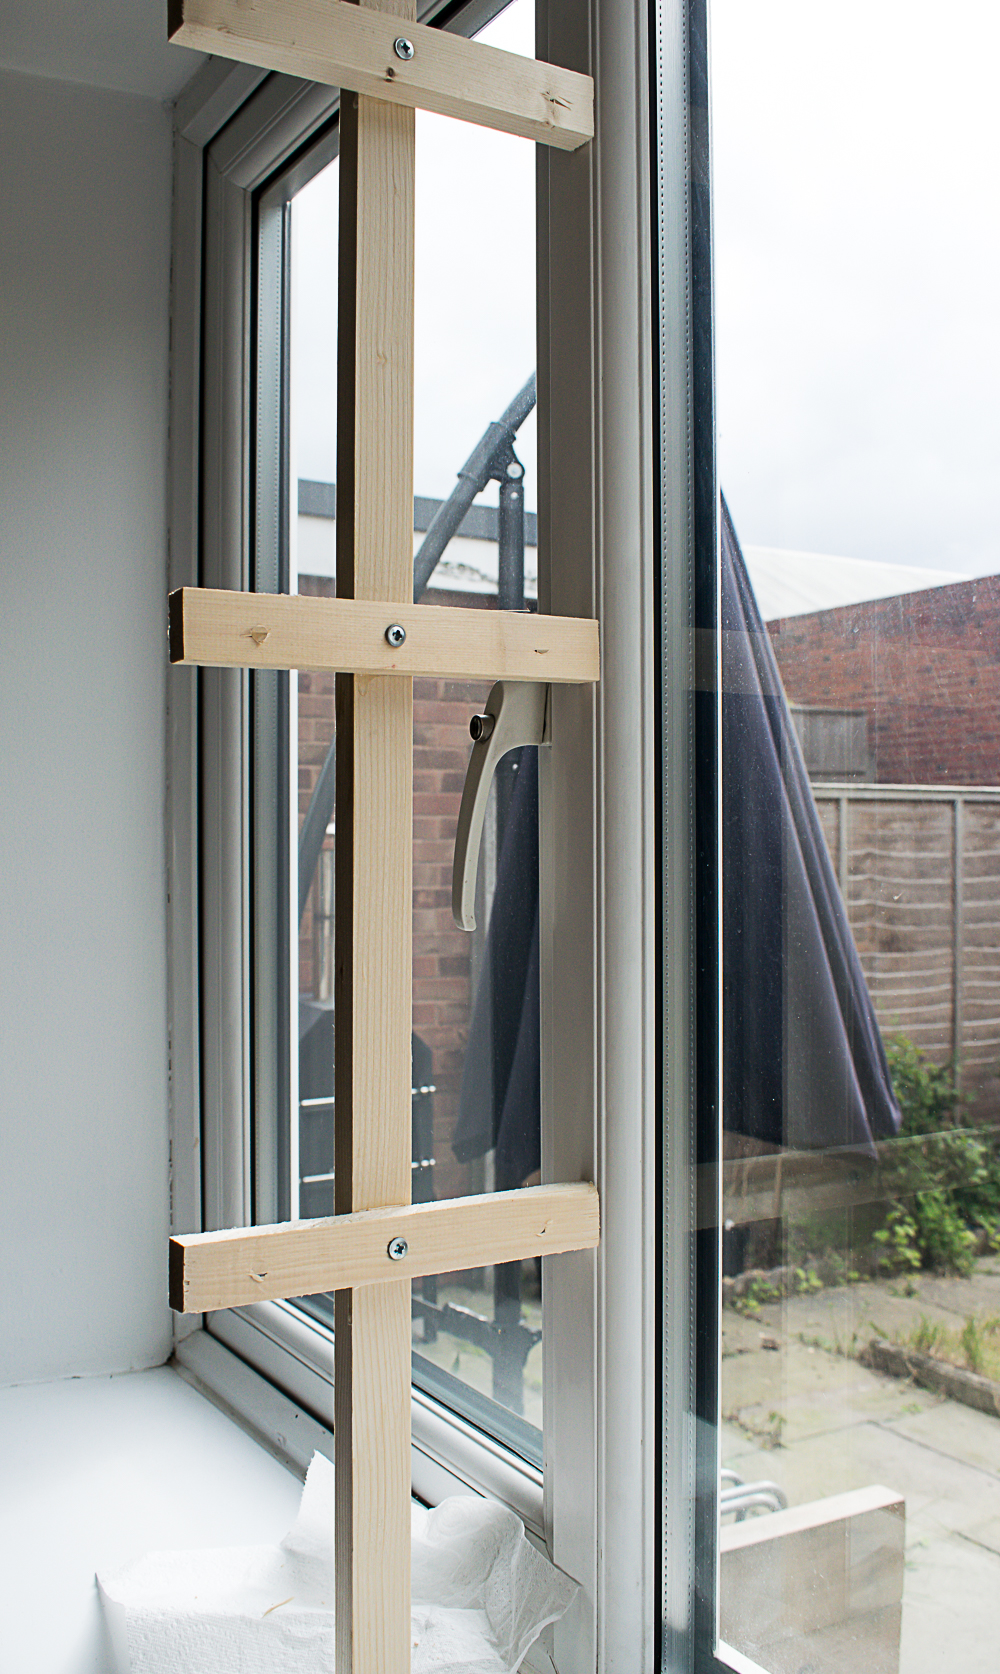 Final image of the unpainted wooden frame in the middle of the window with three of the brackets screwed across the frame